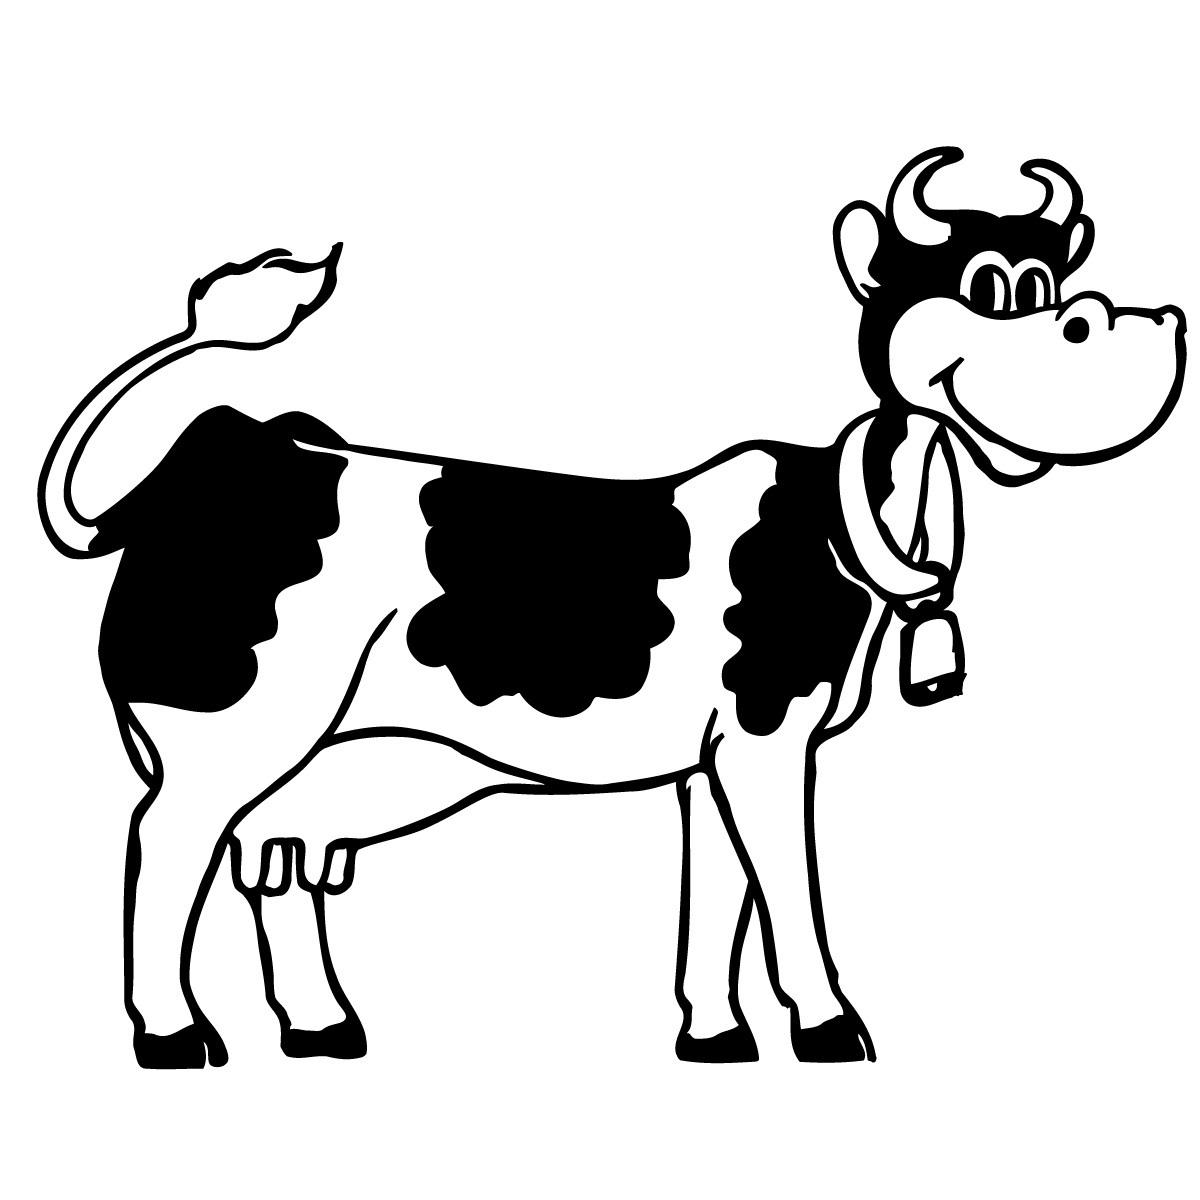 Funny Cow Cartoon Pictures   Clipart Best